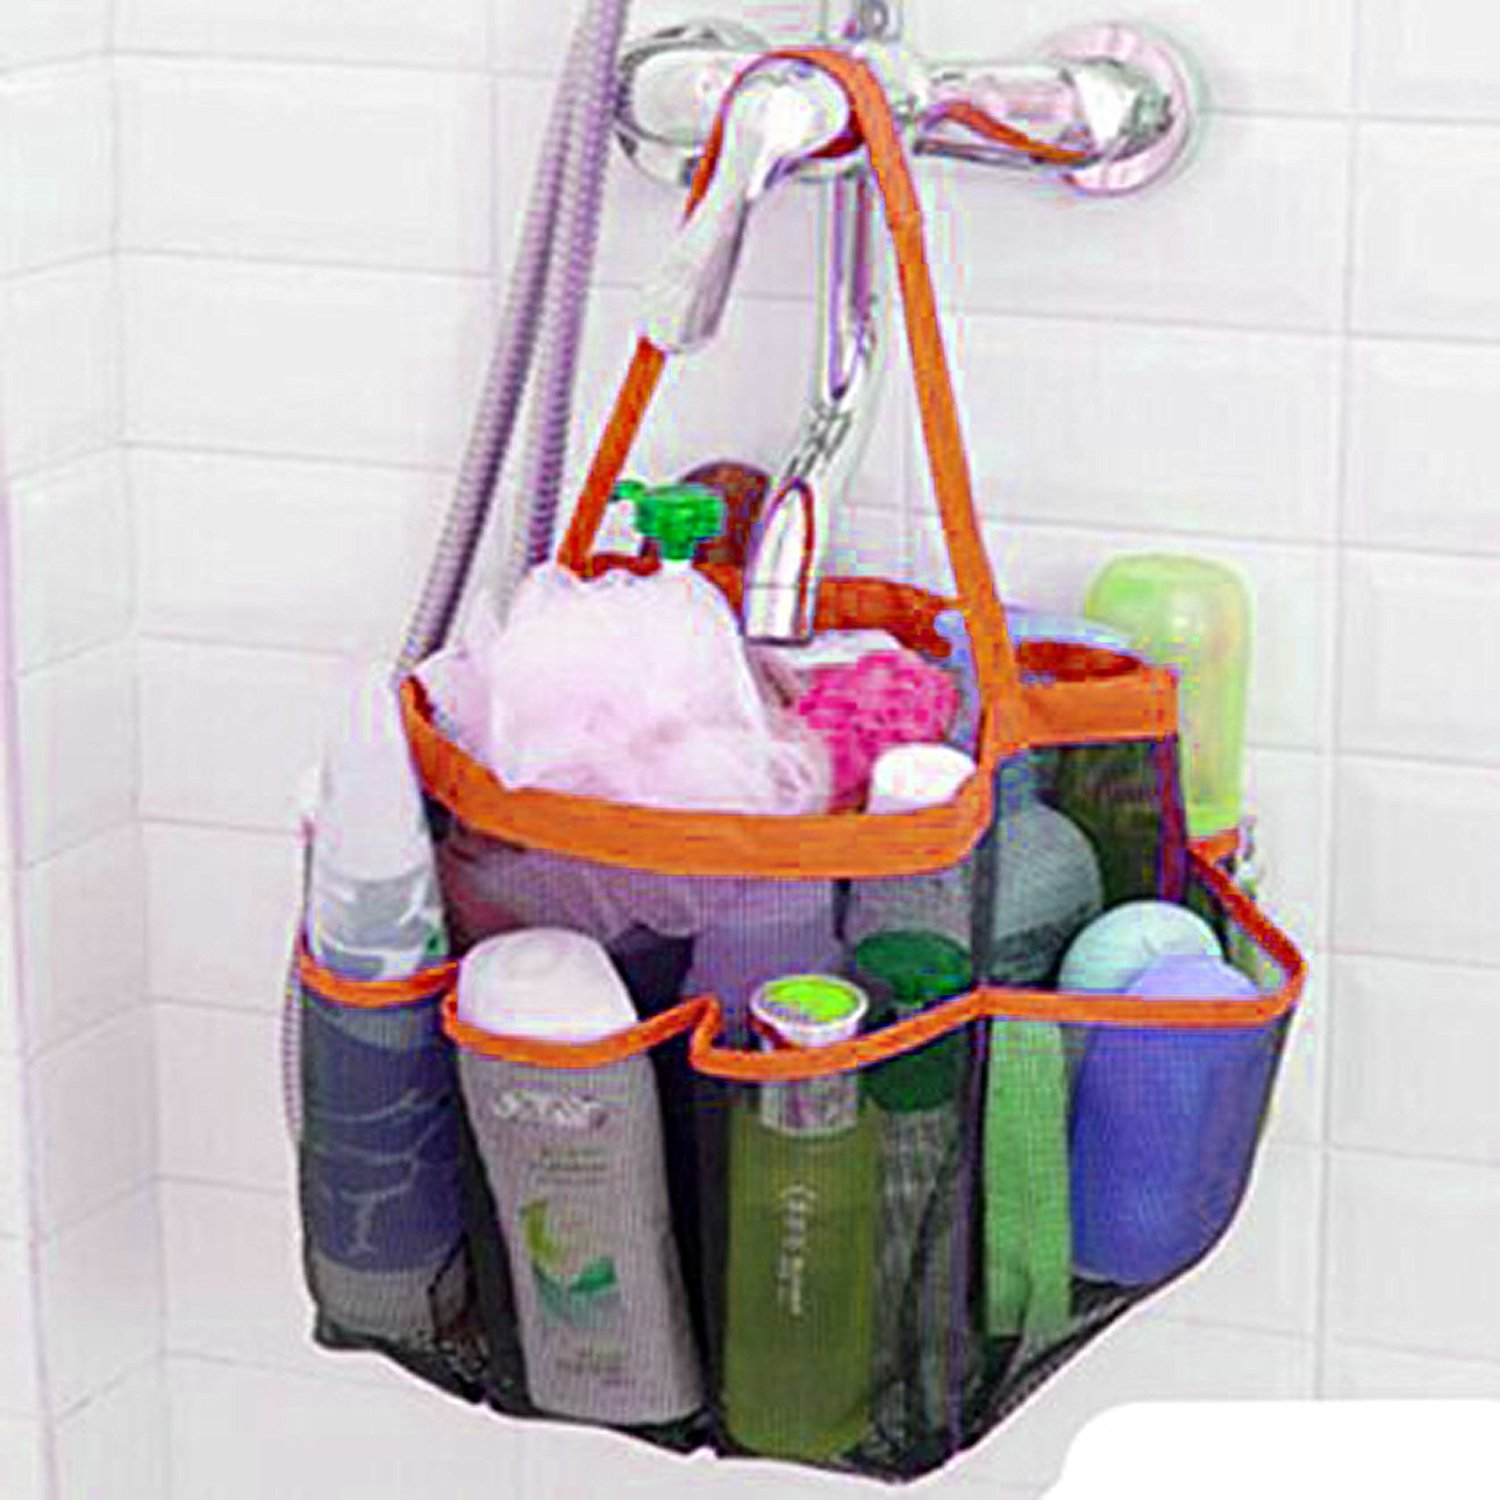 Cheap Shower Caddy Basket, find Shower Caddy Basket deals on line at ...